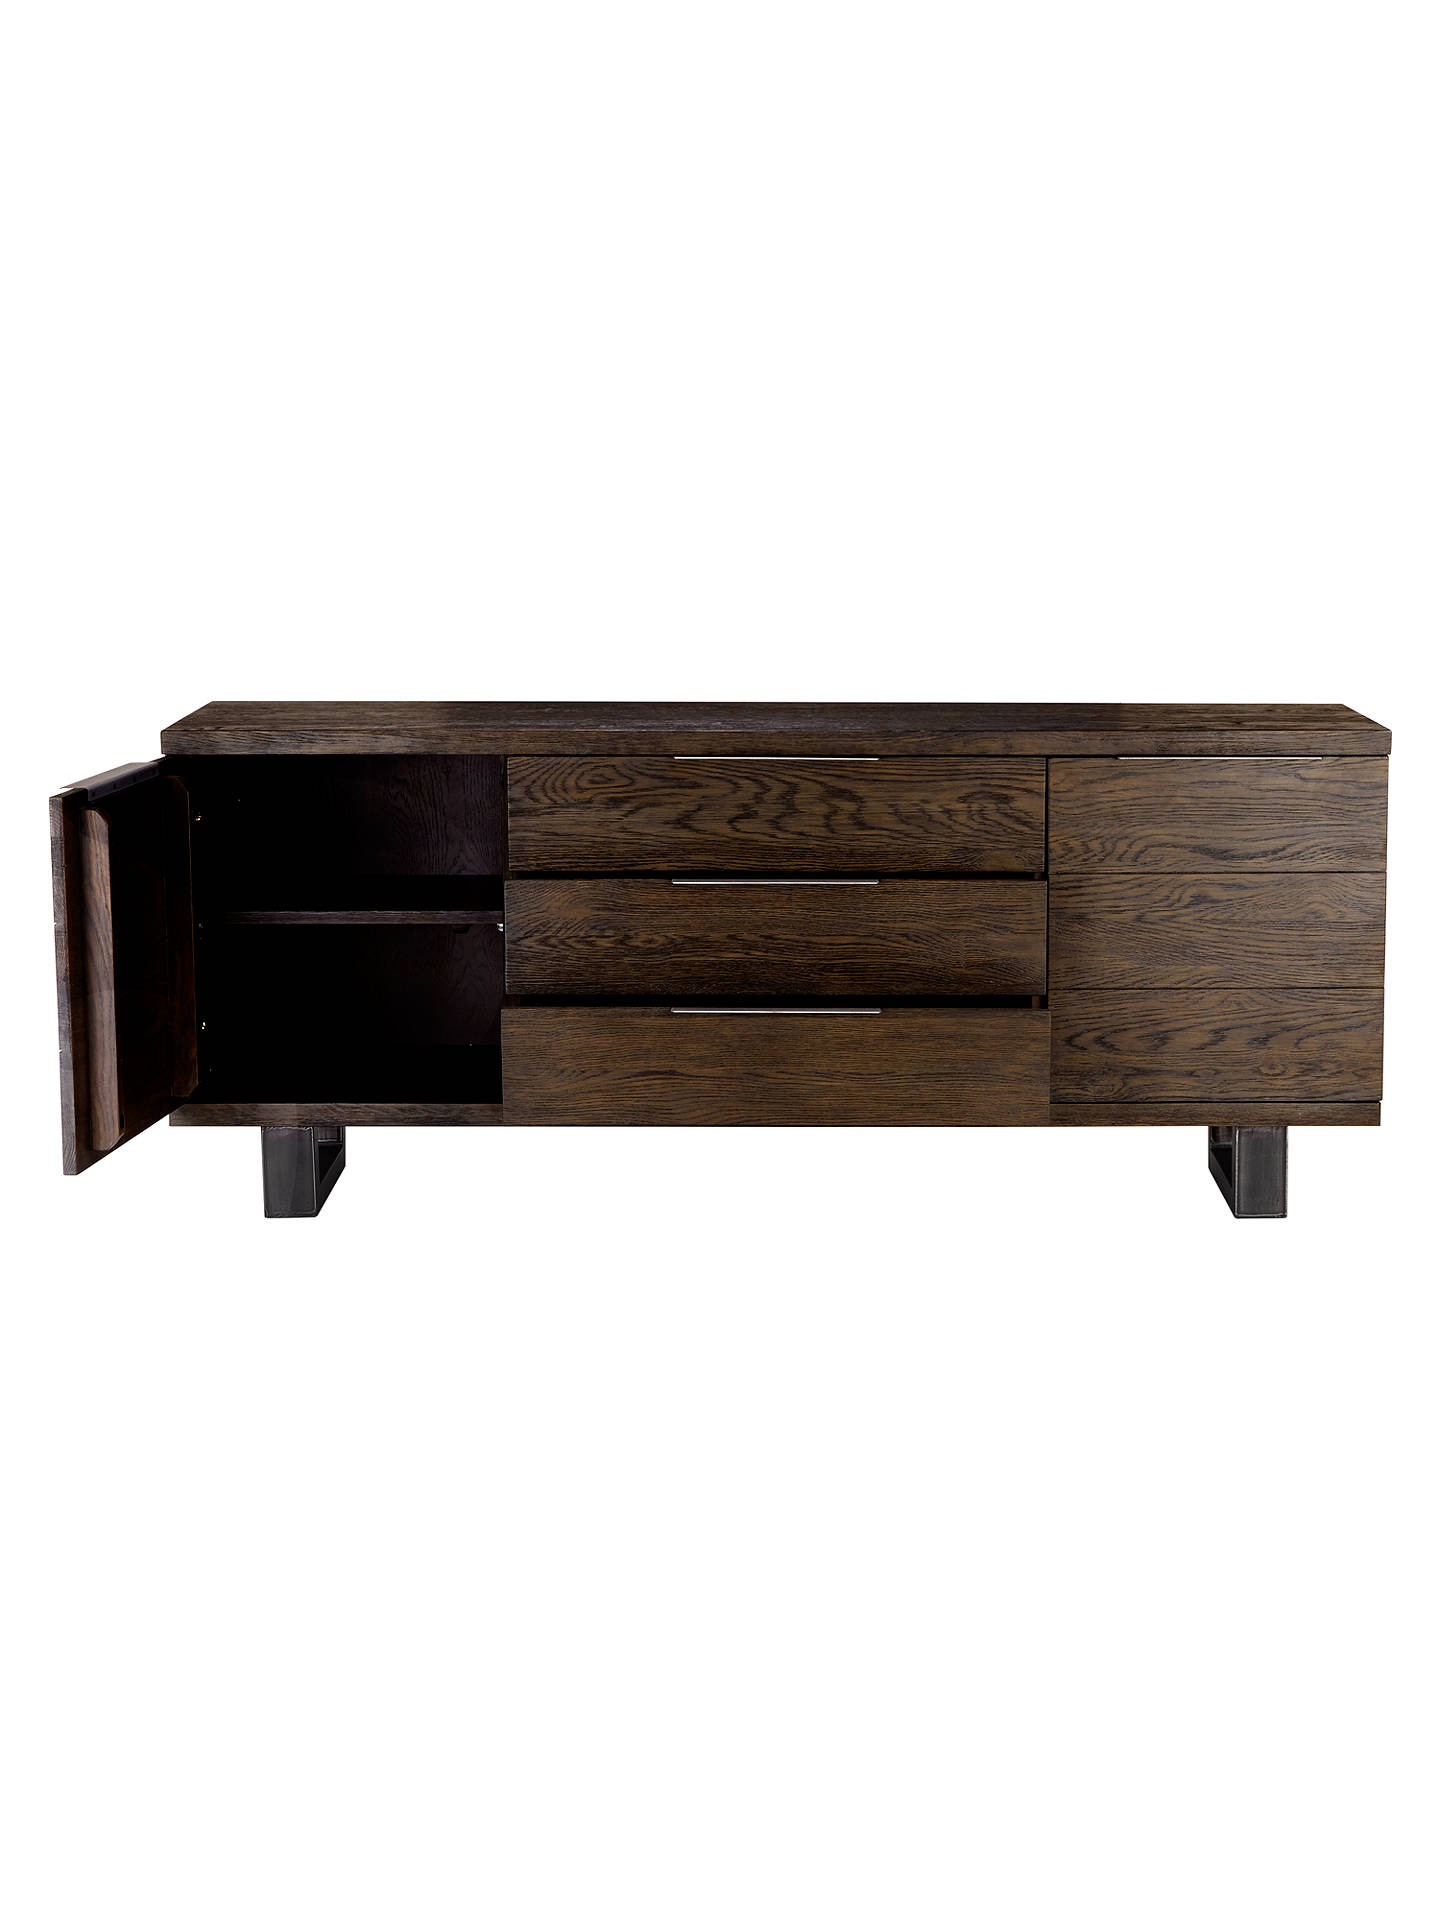 Buy John Lewis & Partners Calia Sideboard, Dark Online at johnlewis.com